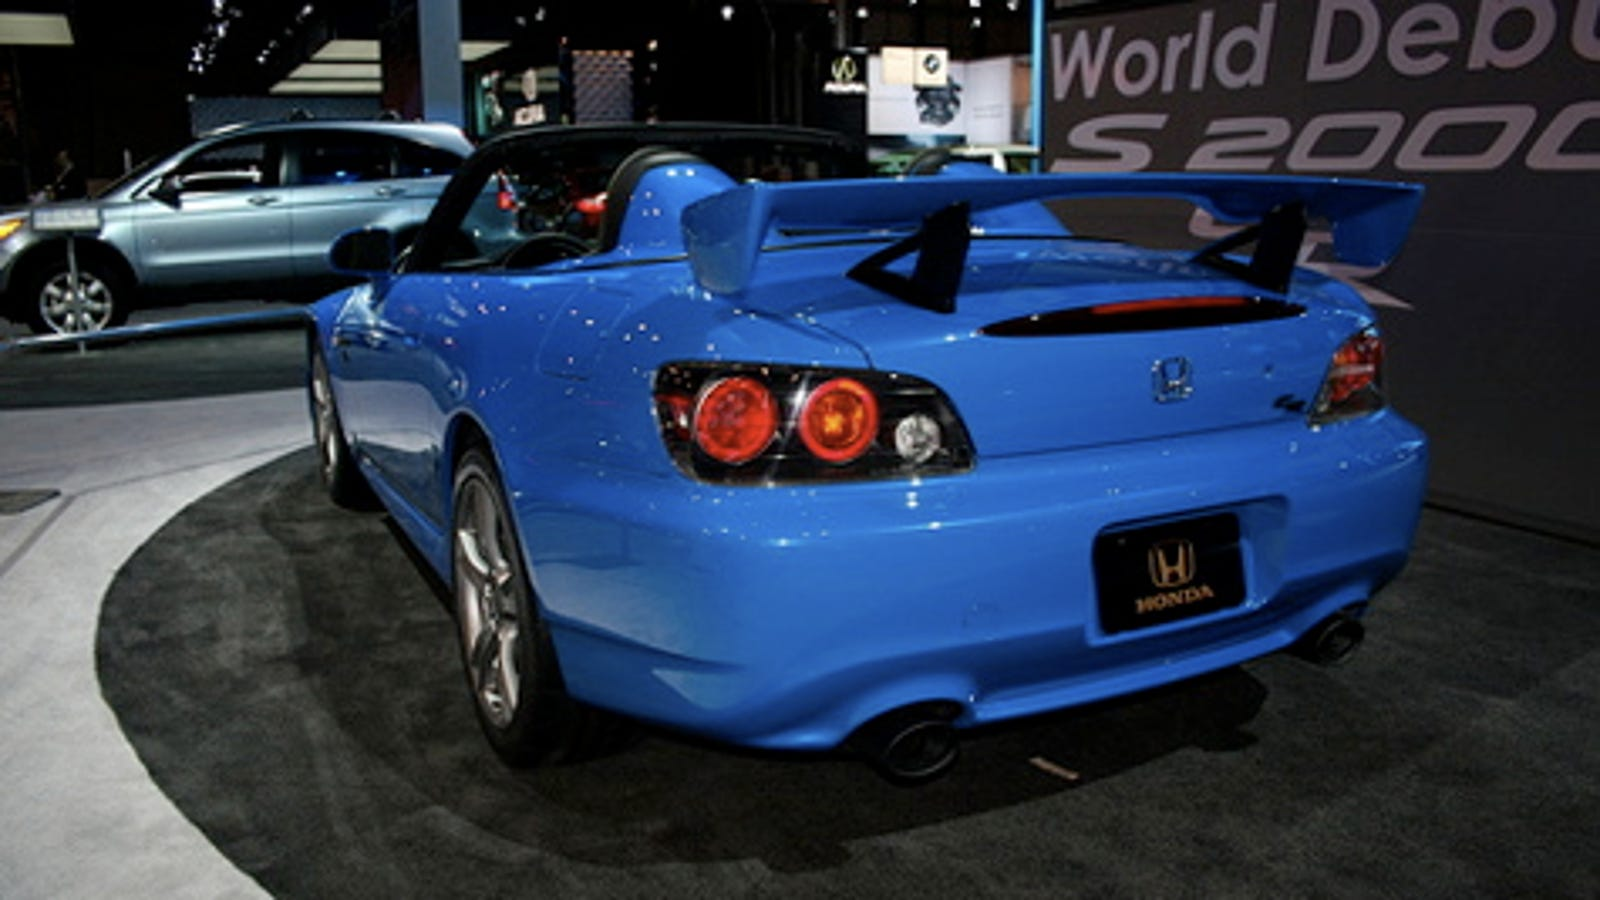 New York Auto Show In The Year 2008 Honda S2000 Cr Wiring Harness 2002